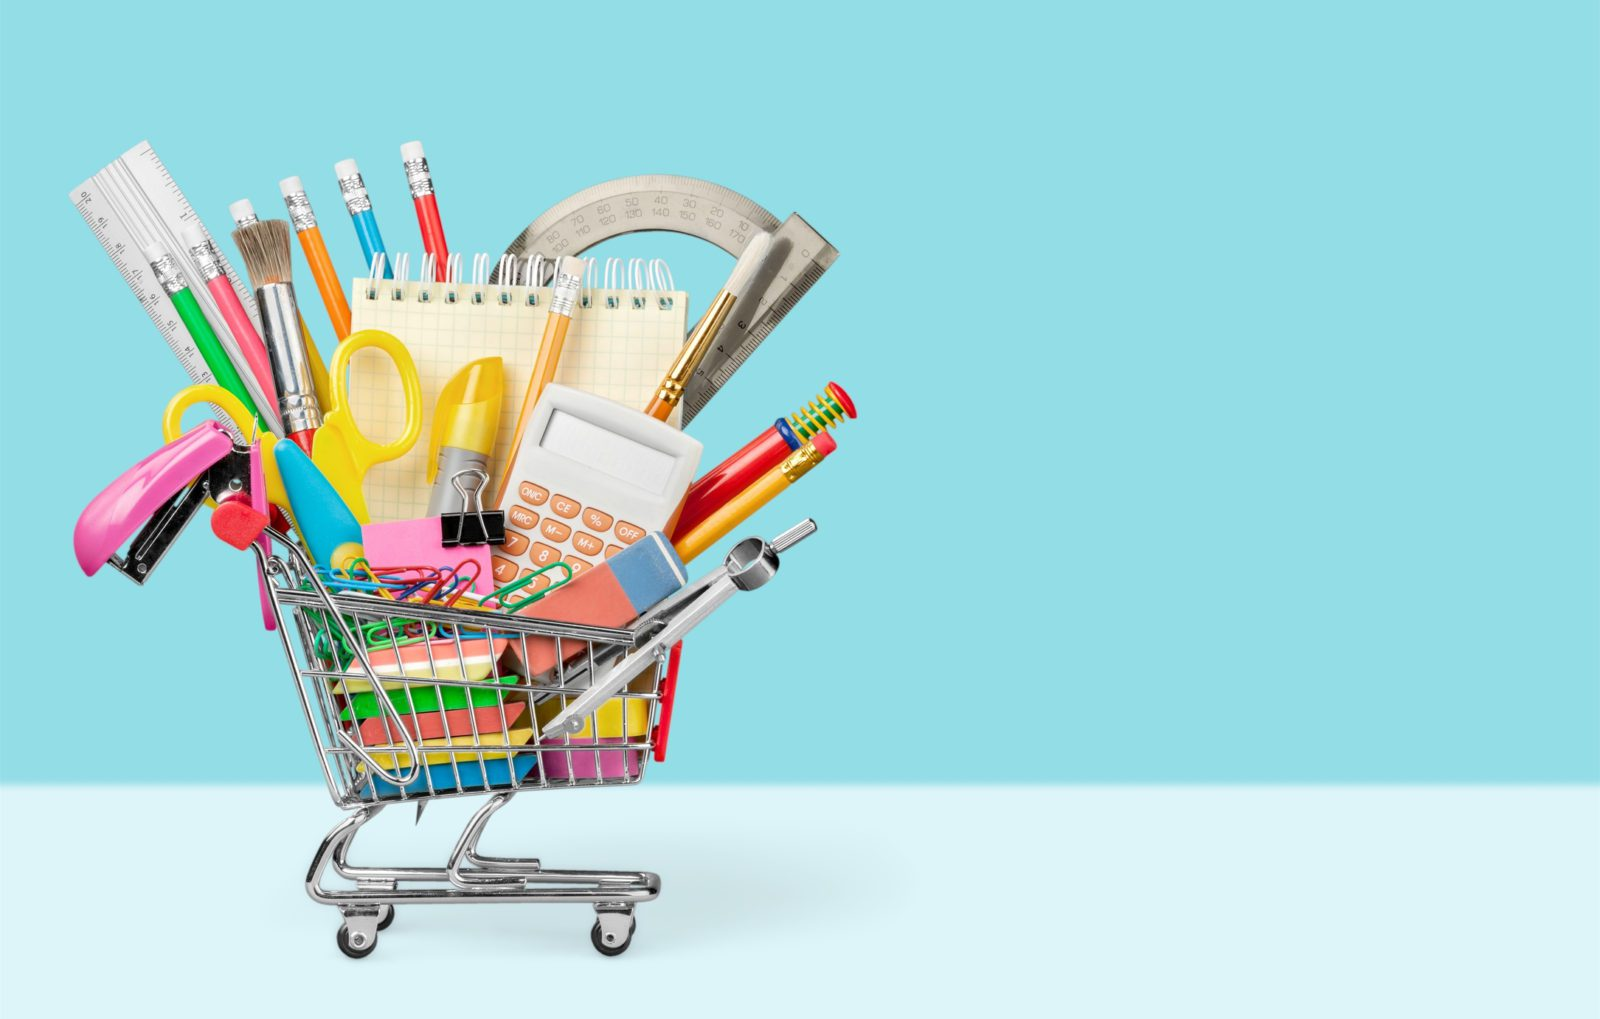 Back to school with shopping cart full of school tools